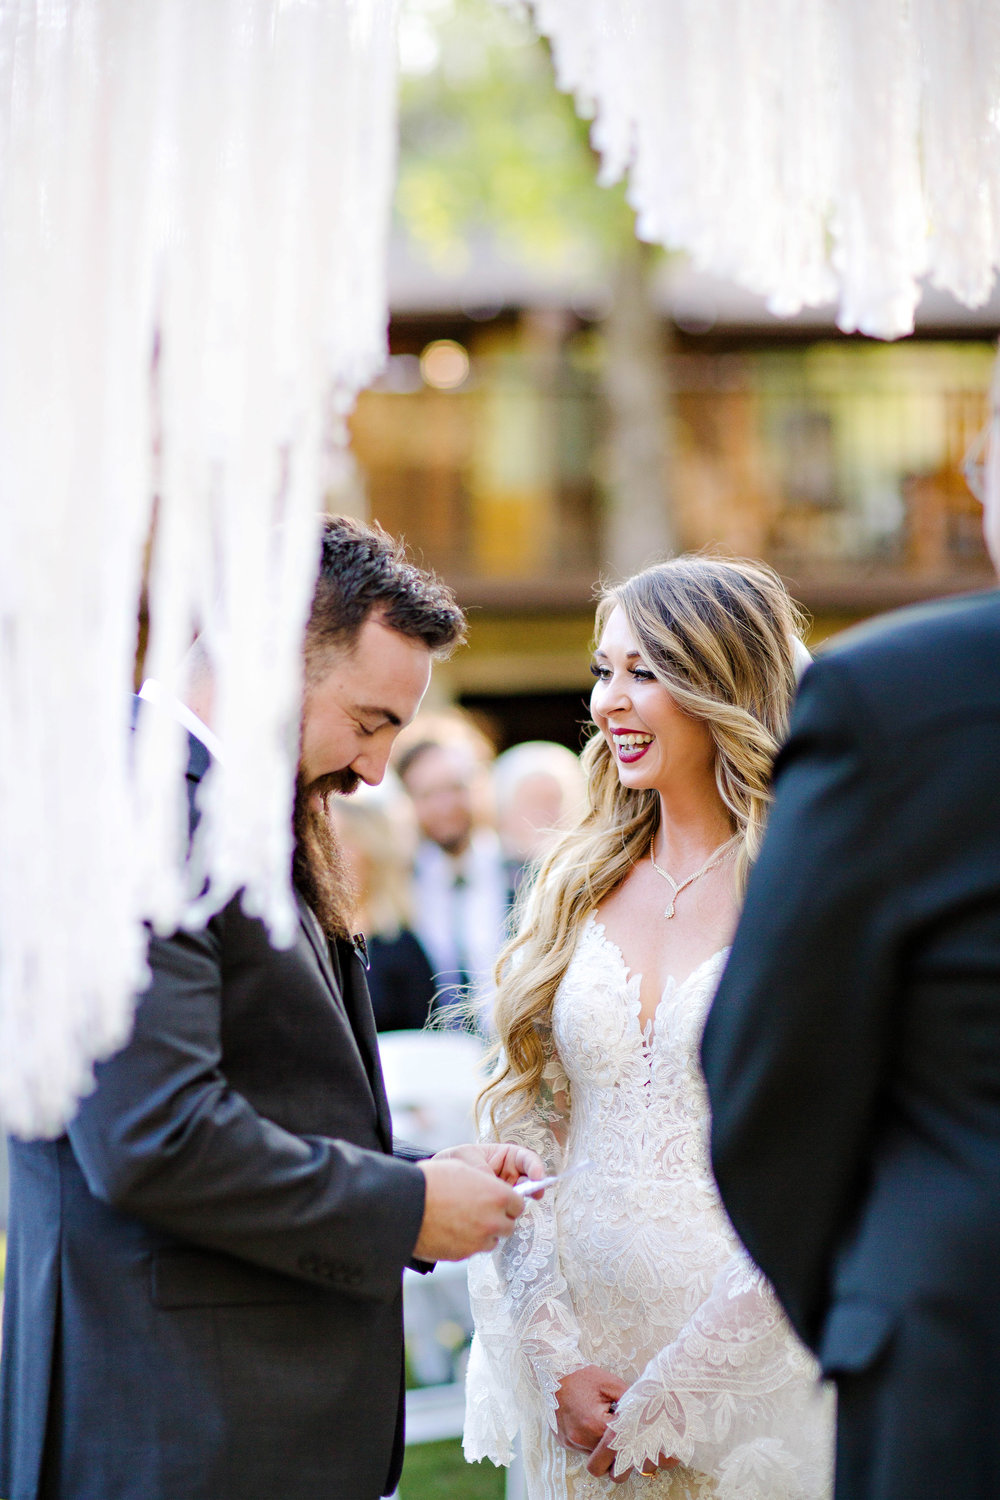 weddings-payson-11.jpg